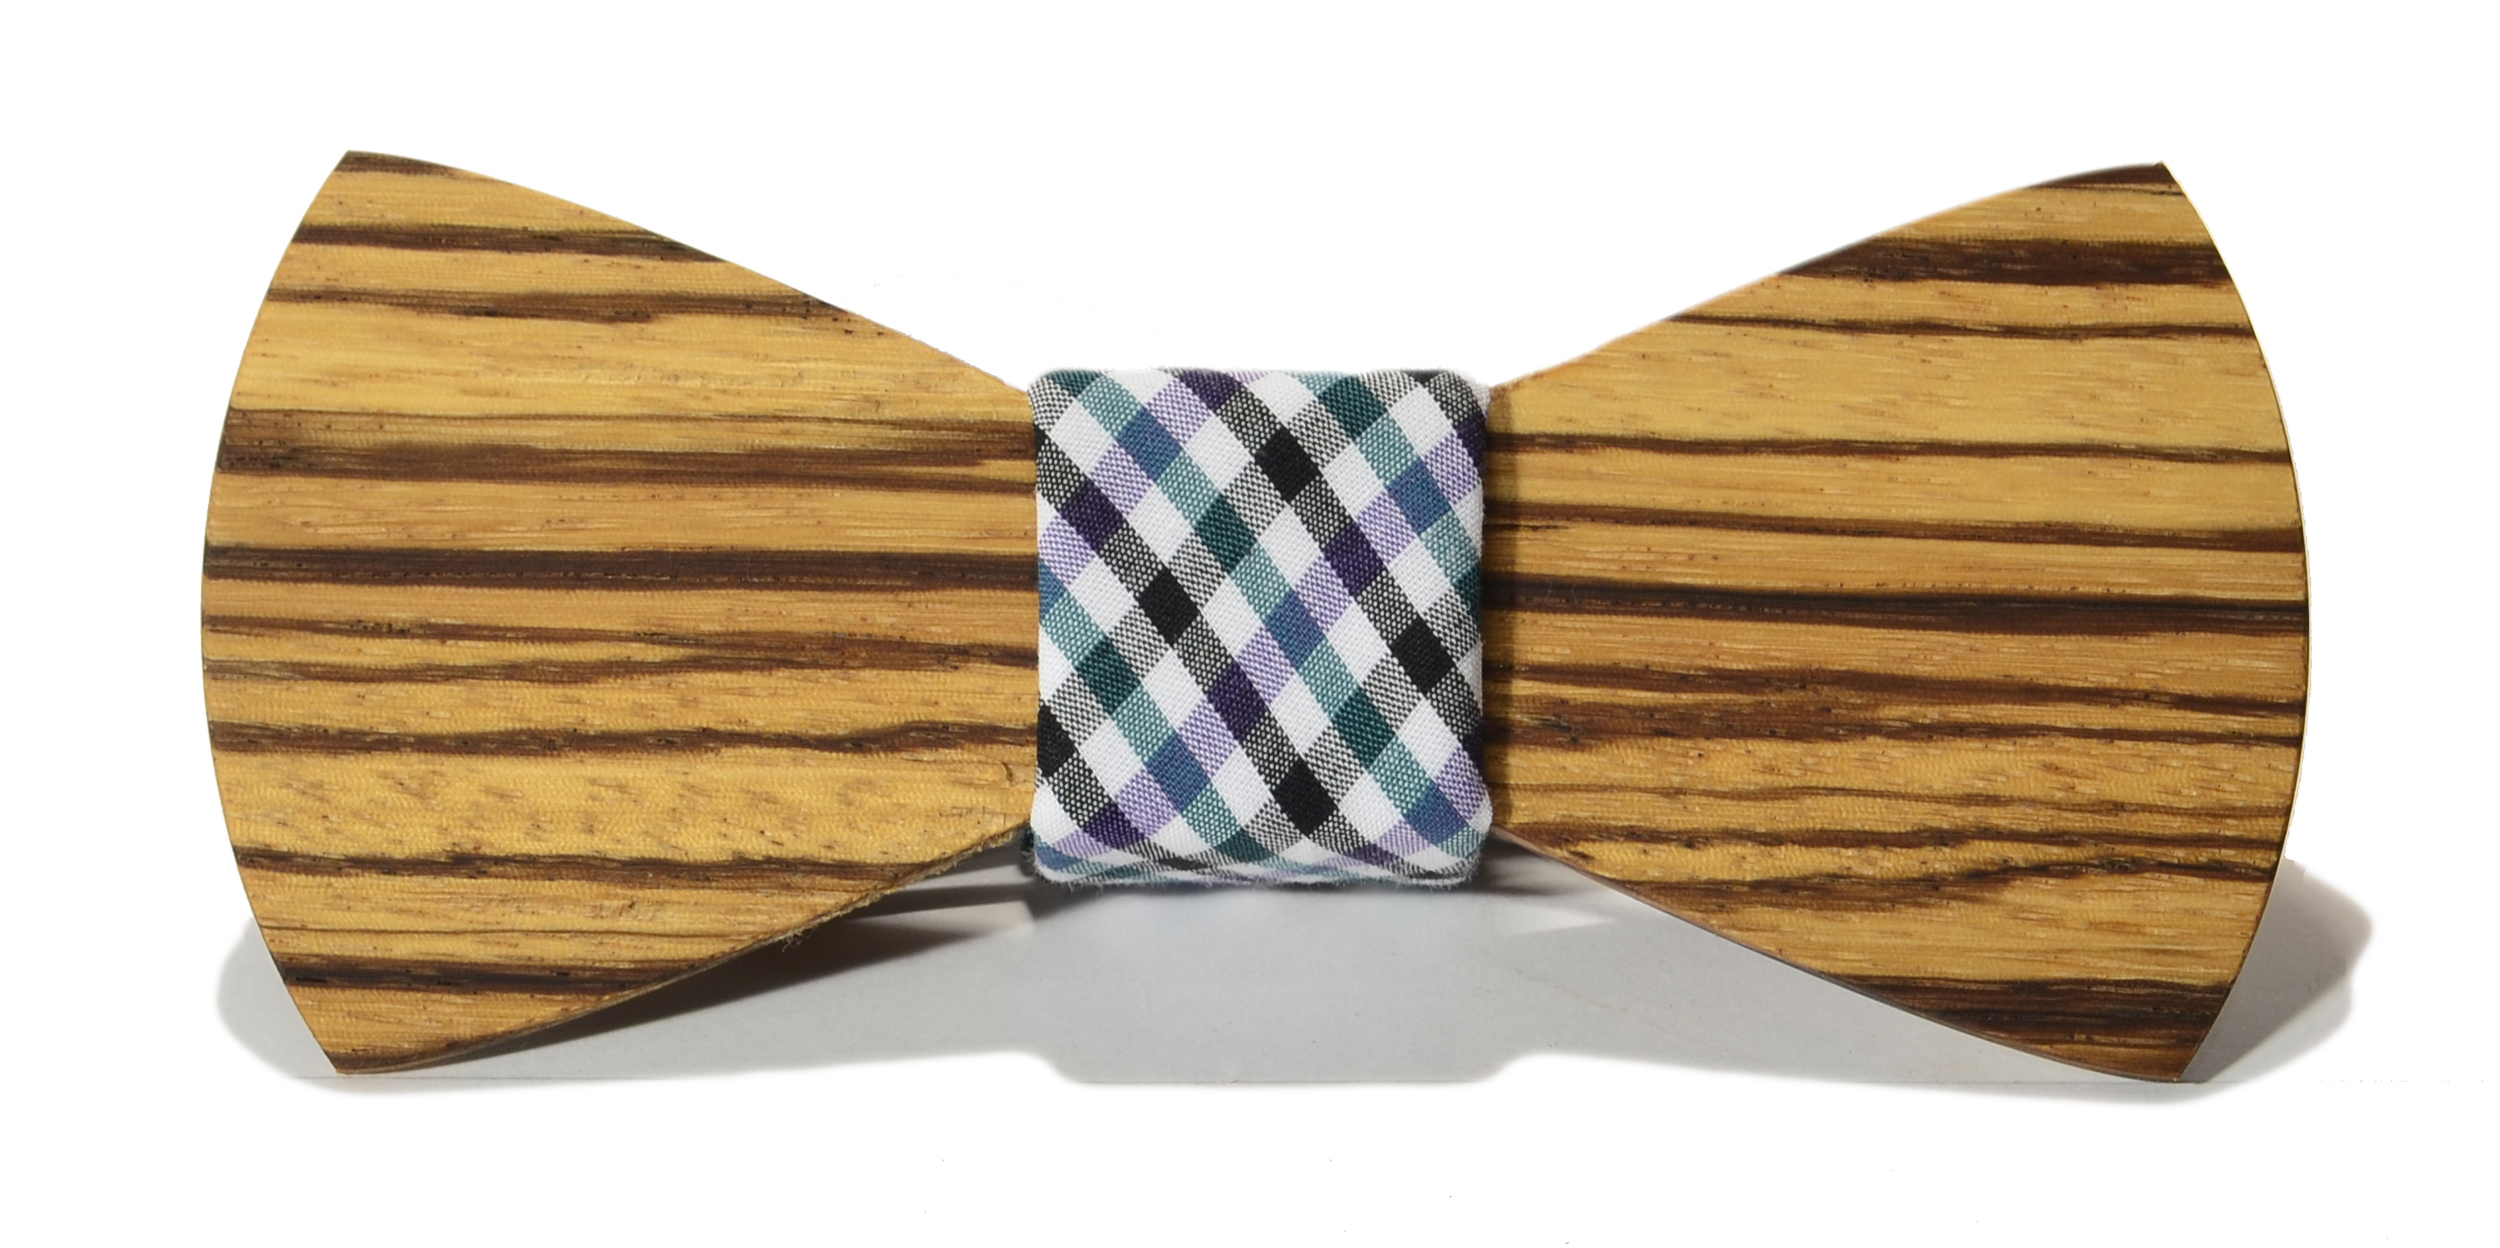 The Felling Zebrawood Traditonal Cotton Wooden Bow Tie